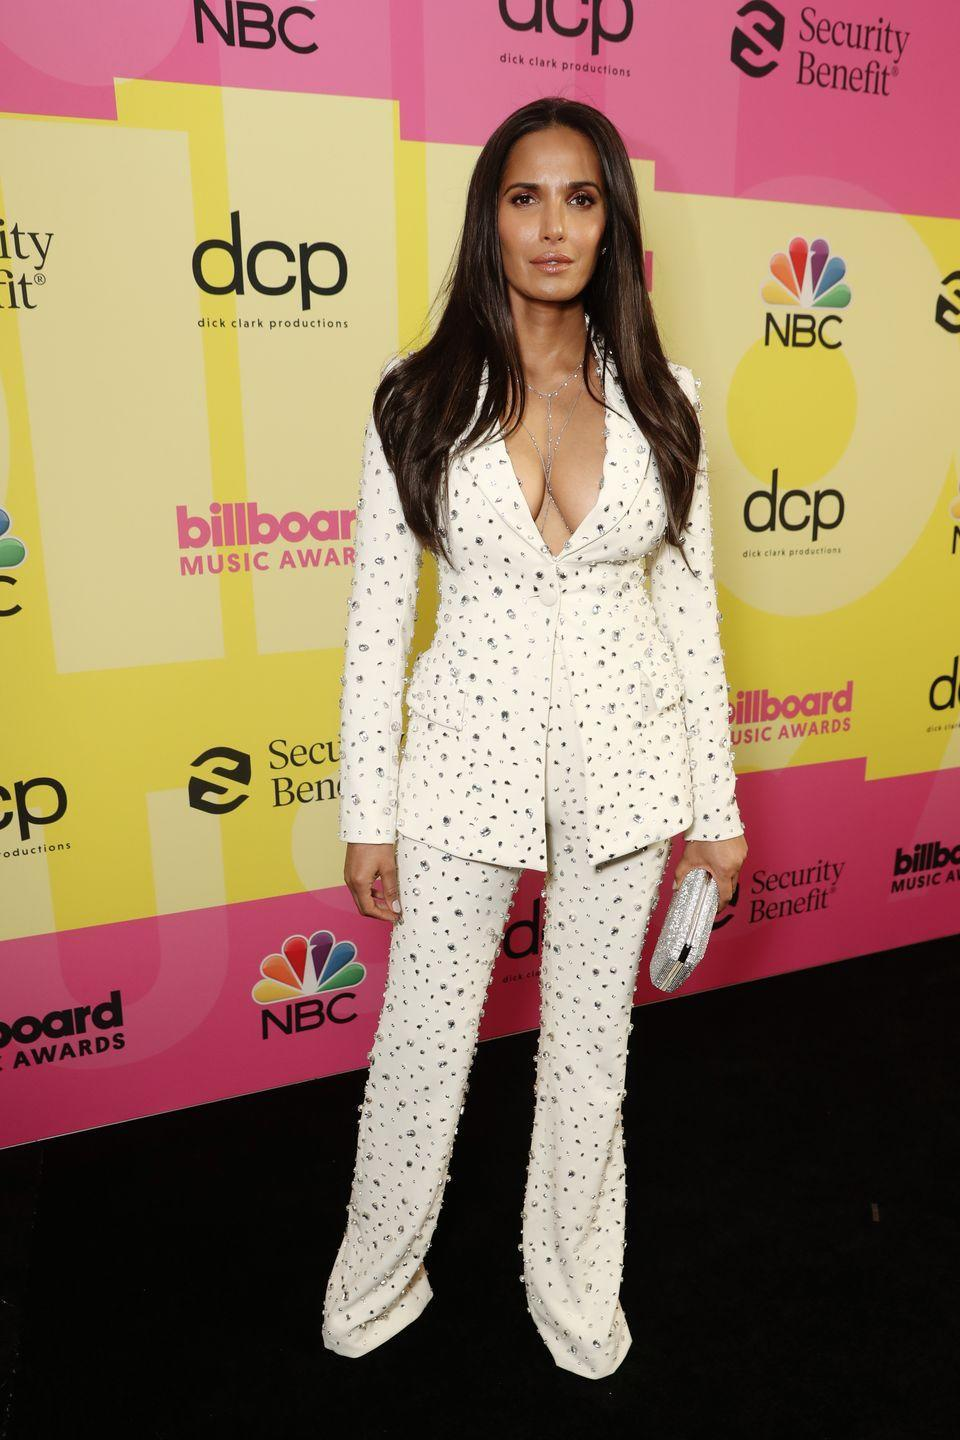 <p><strong>What:</strong> Christian Siriano <u><strong><strong><br></strong></strong></u><br><strong>Why:</strong> Showing off the blingy three-piece coordinate set on Instagram, Padma Lakshmi went with a less traditional (but equally opulent) tailored suit by the famed brand. She kept the accessories minimal and added a lariat-style necklace to accent the plunging neckline. Topping the look off with a glittered silver clutch and subtle makeup, she let the embellished outfit speak for itself. </p>